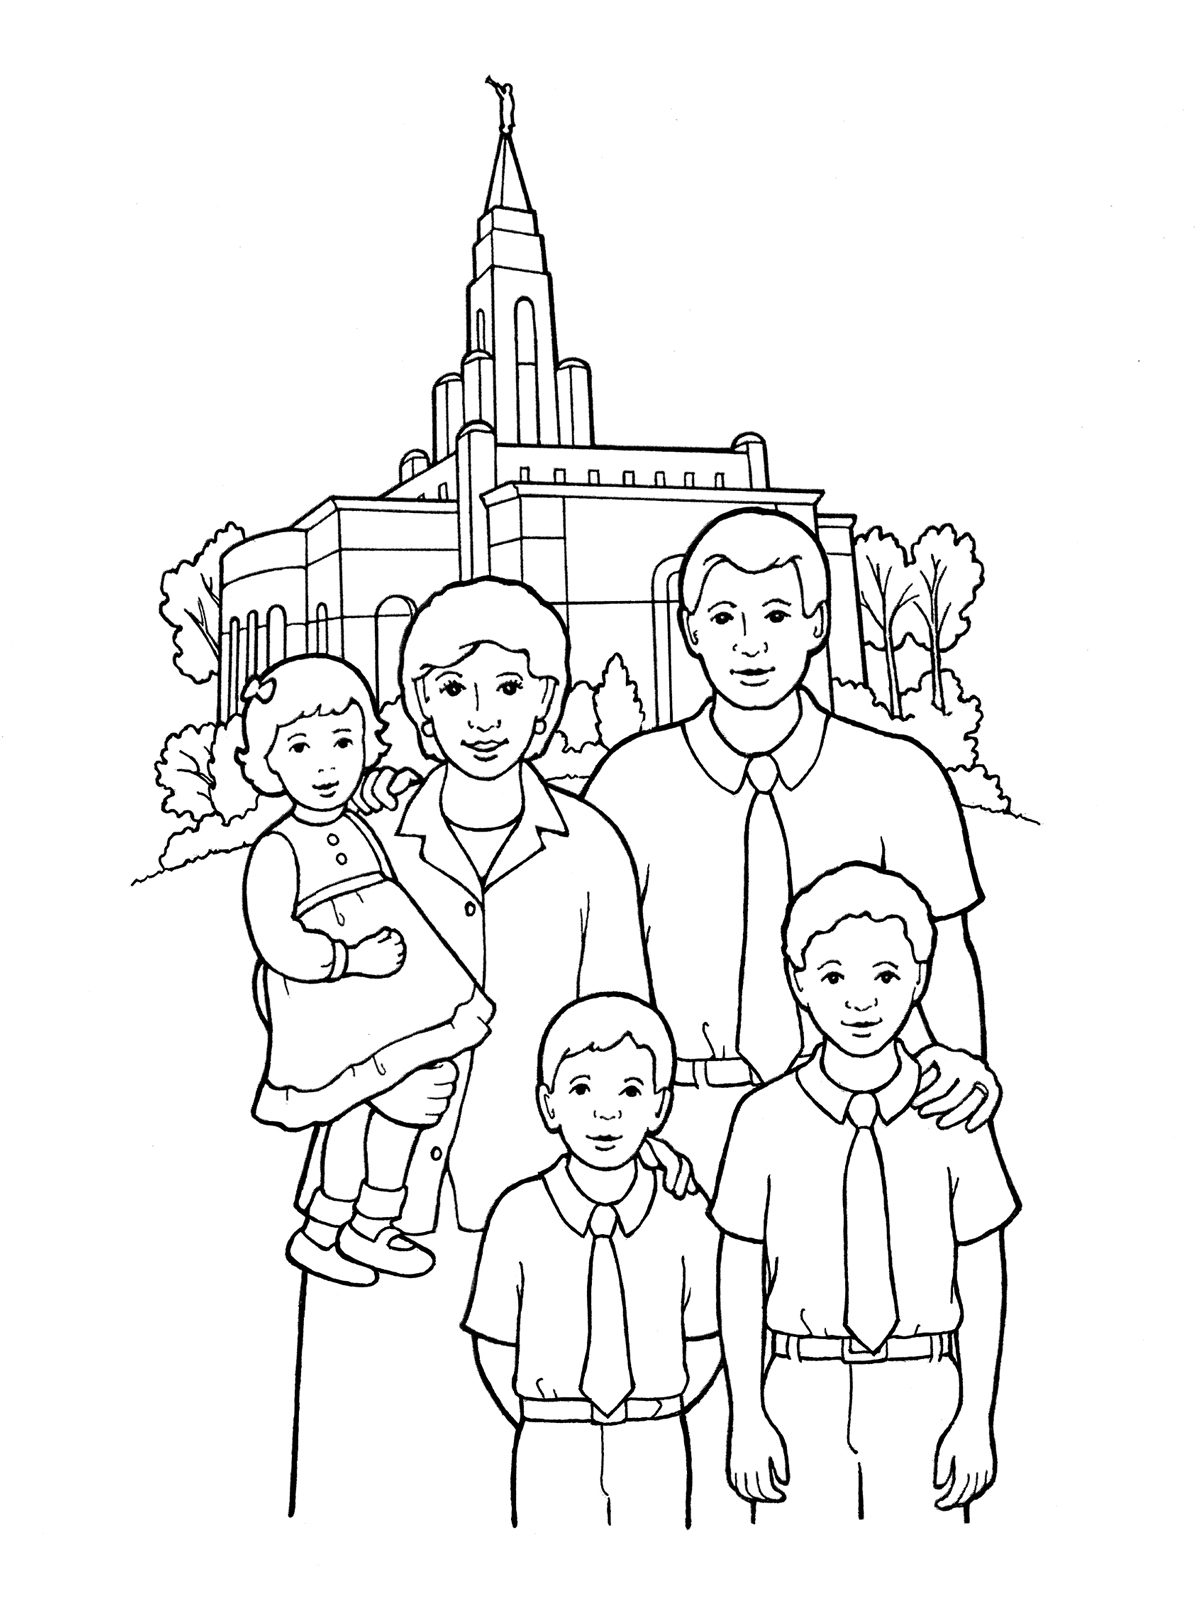 25 Lds Temple Coloring Pages Pictures | FREE COLORING PAGES - Part 3